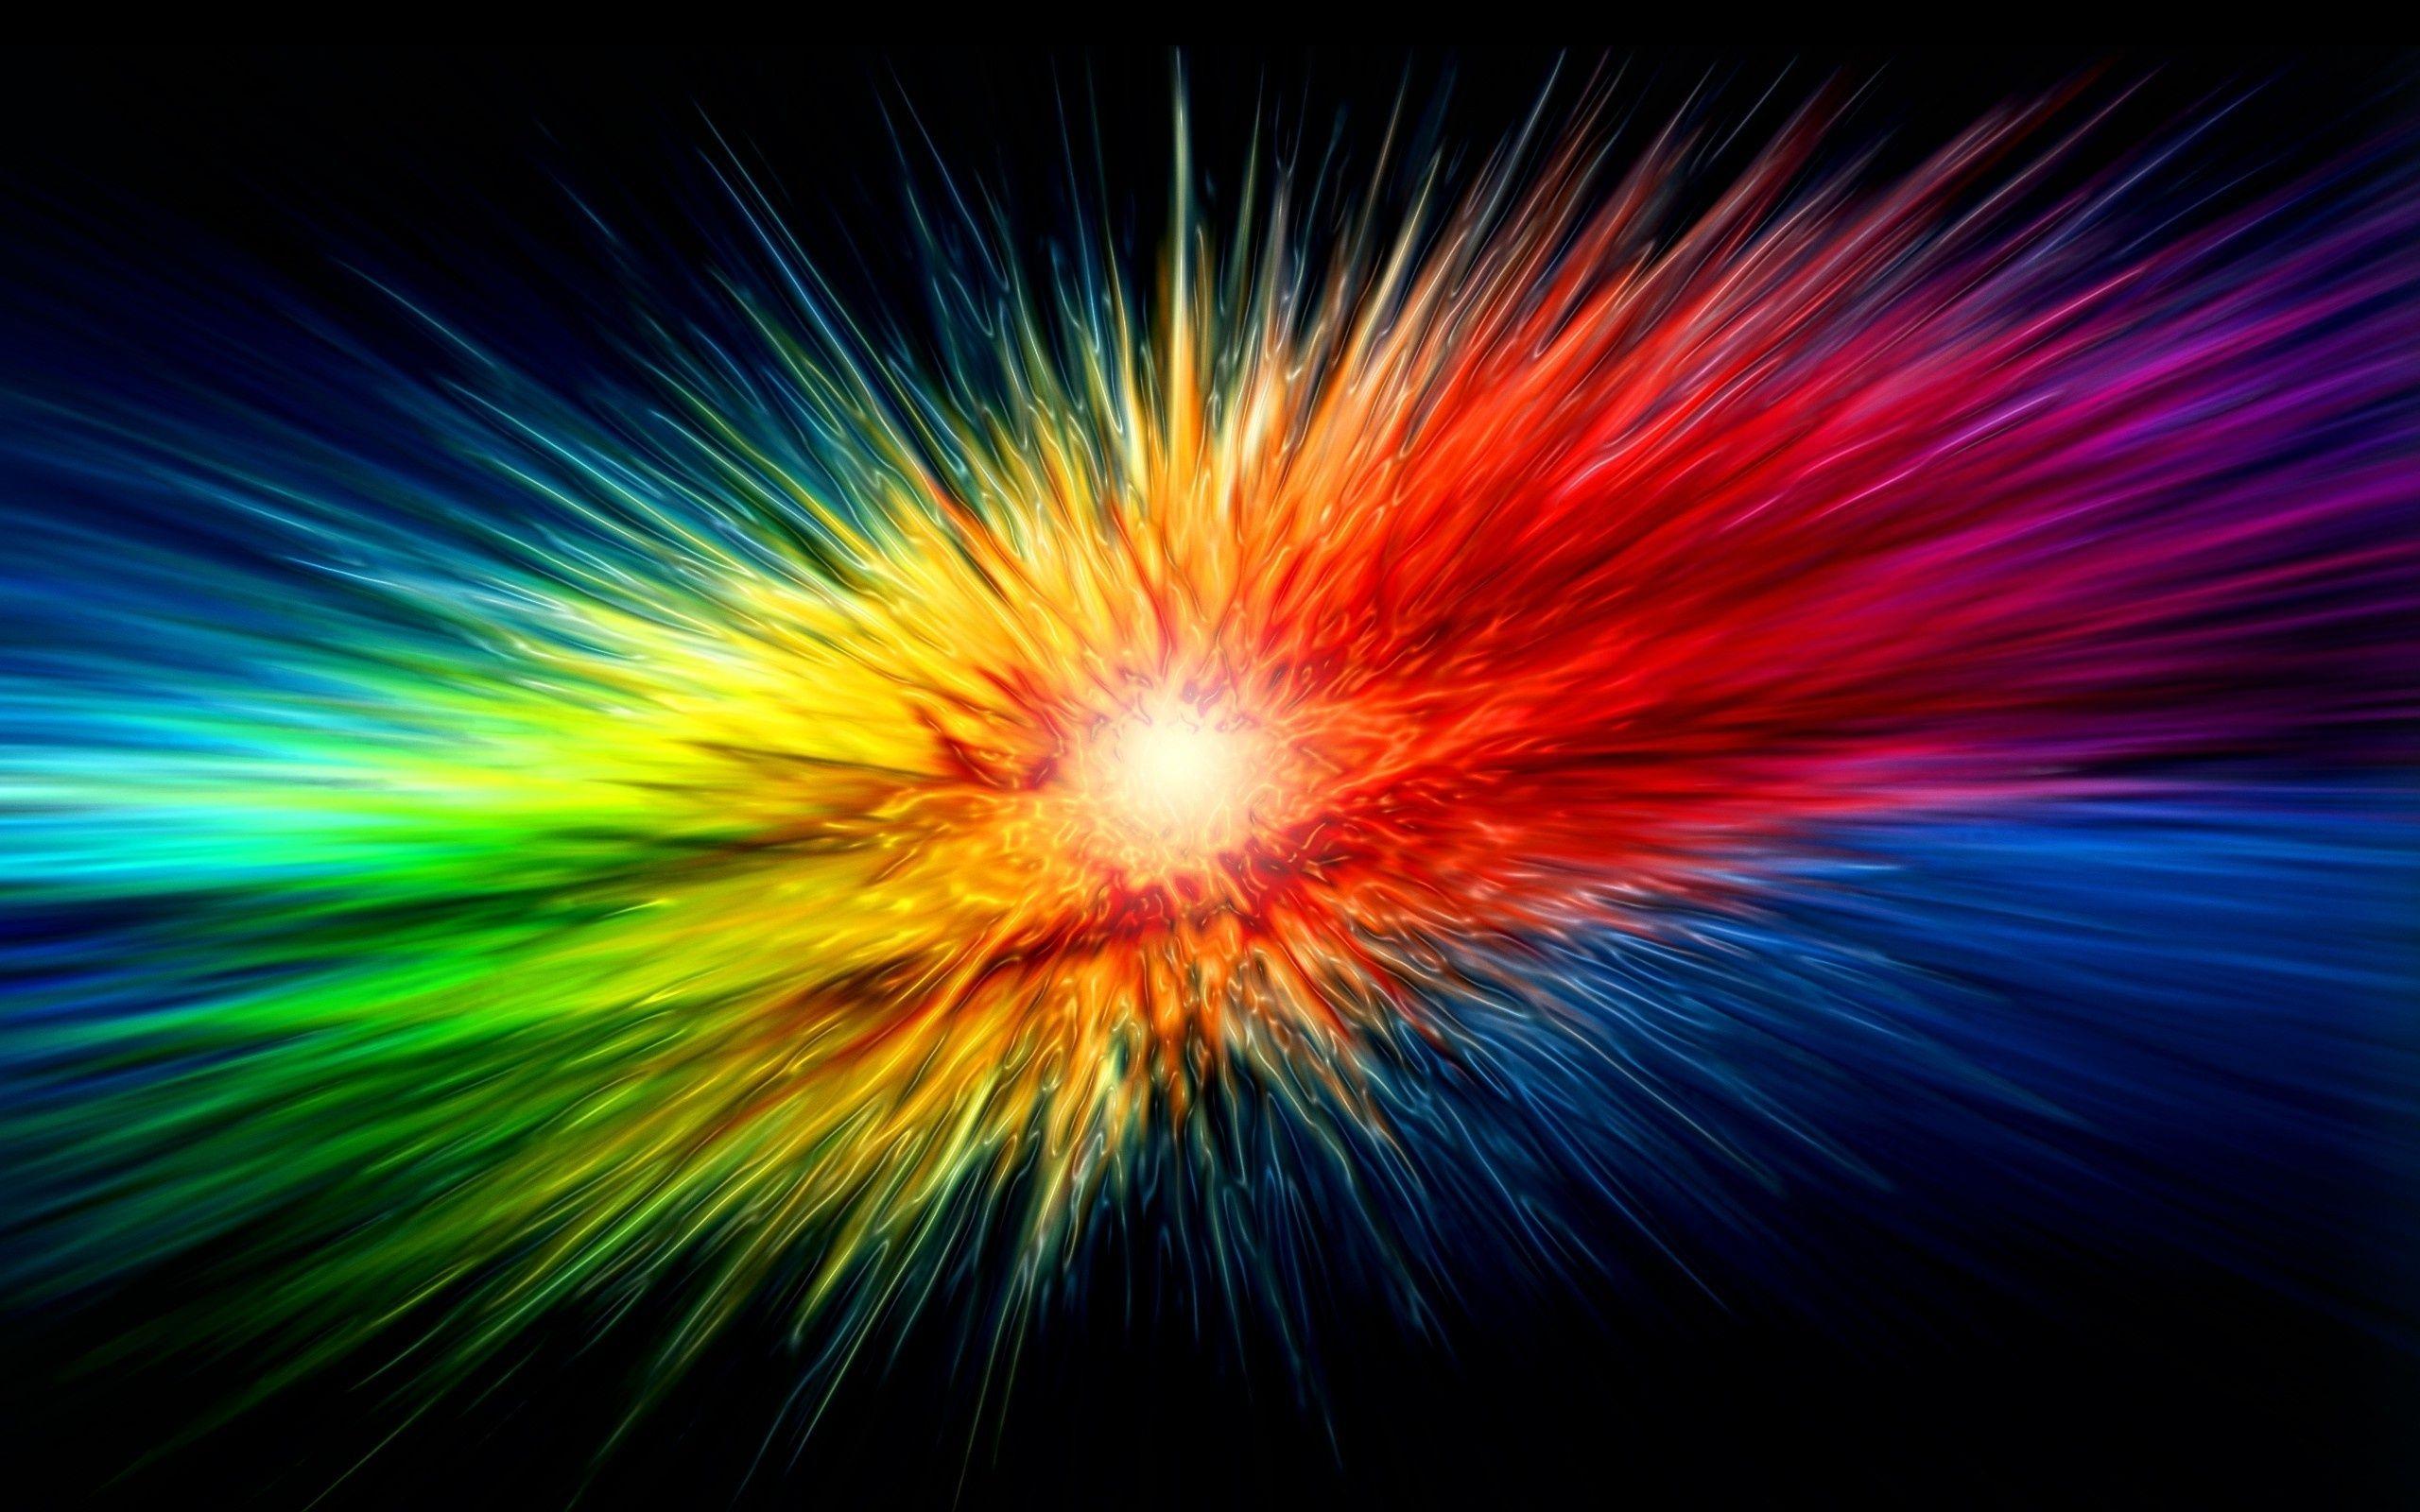 colour-burst-explosion-and-po-high-resolution-2560x1600px : Free ...